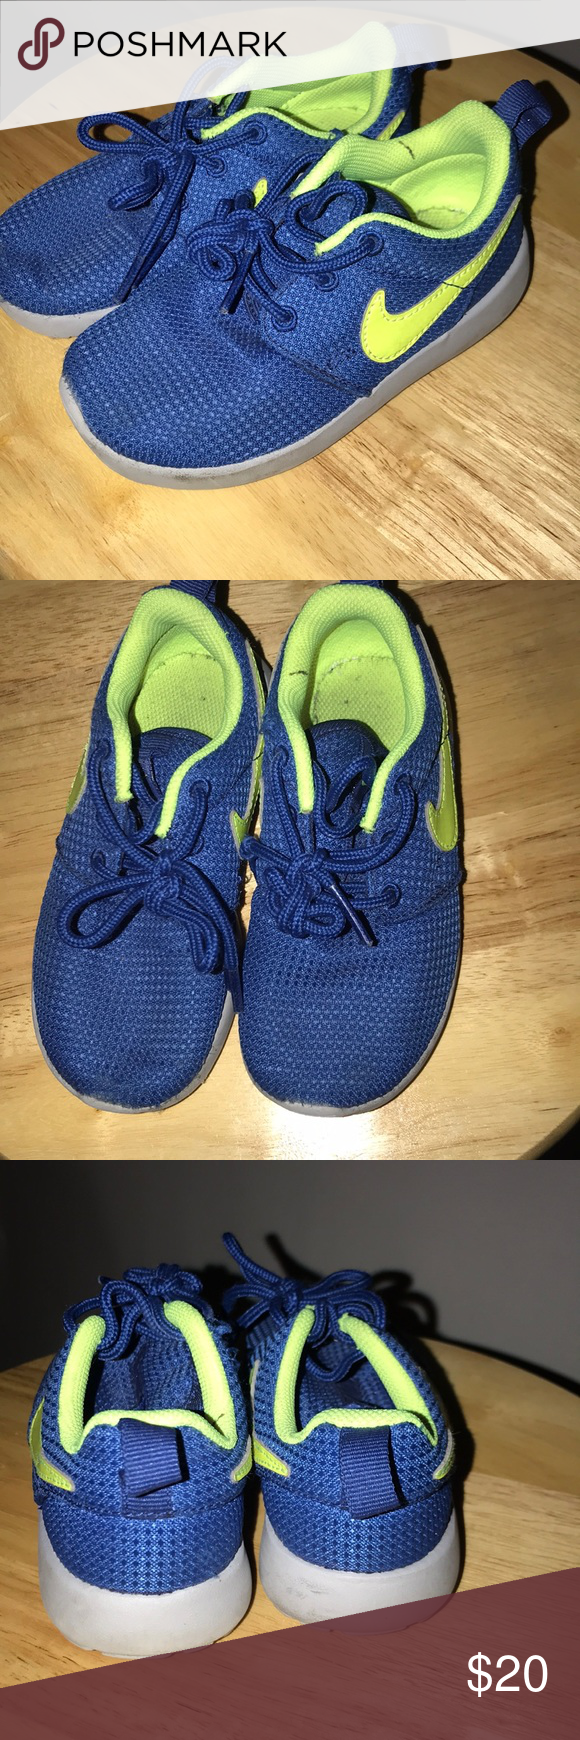 5adf8336942d1 Nike Roshe Run kids Kids 9c Roshe Runs Blue and green color Smoke   Animal  free home Great condition worn once Nike Shoes Sneakers